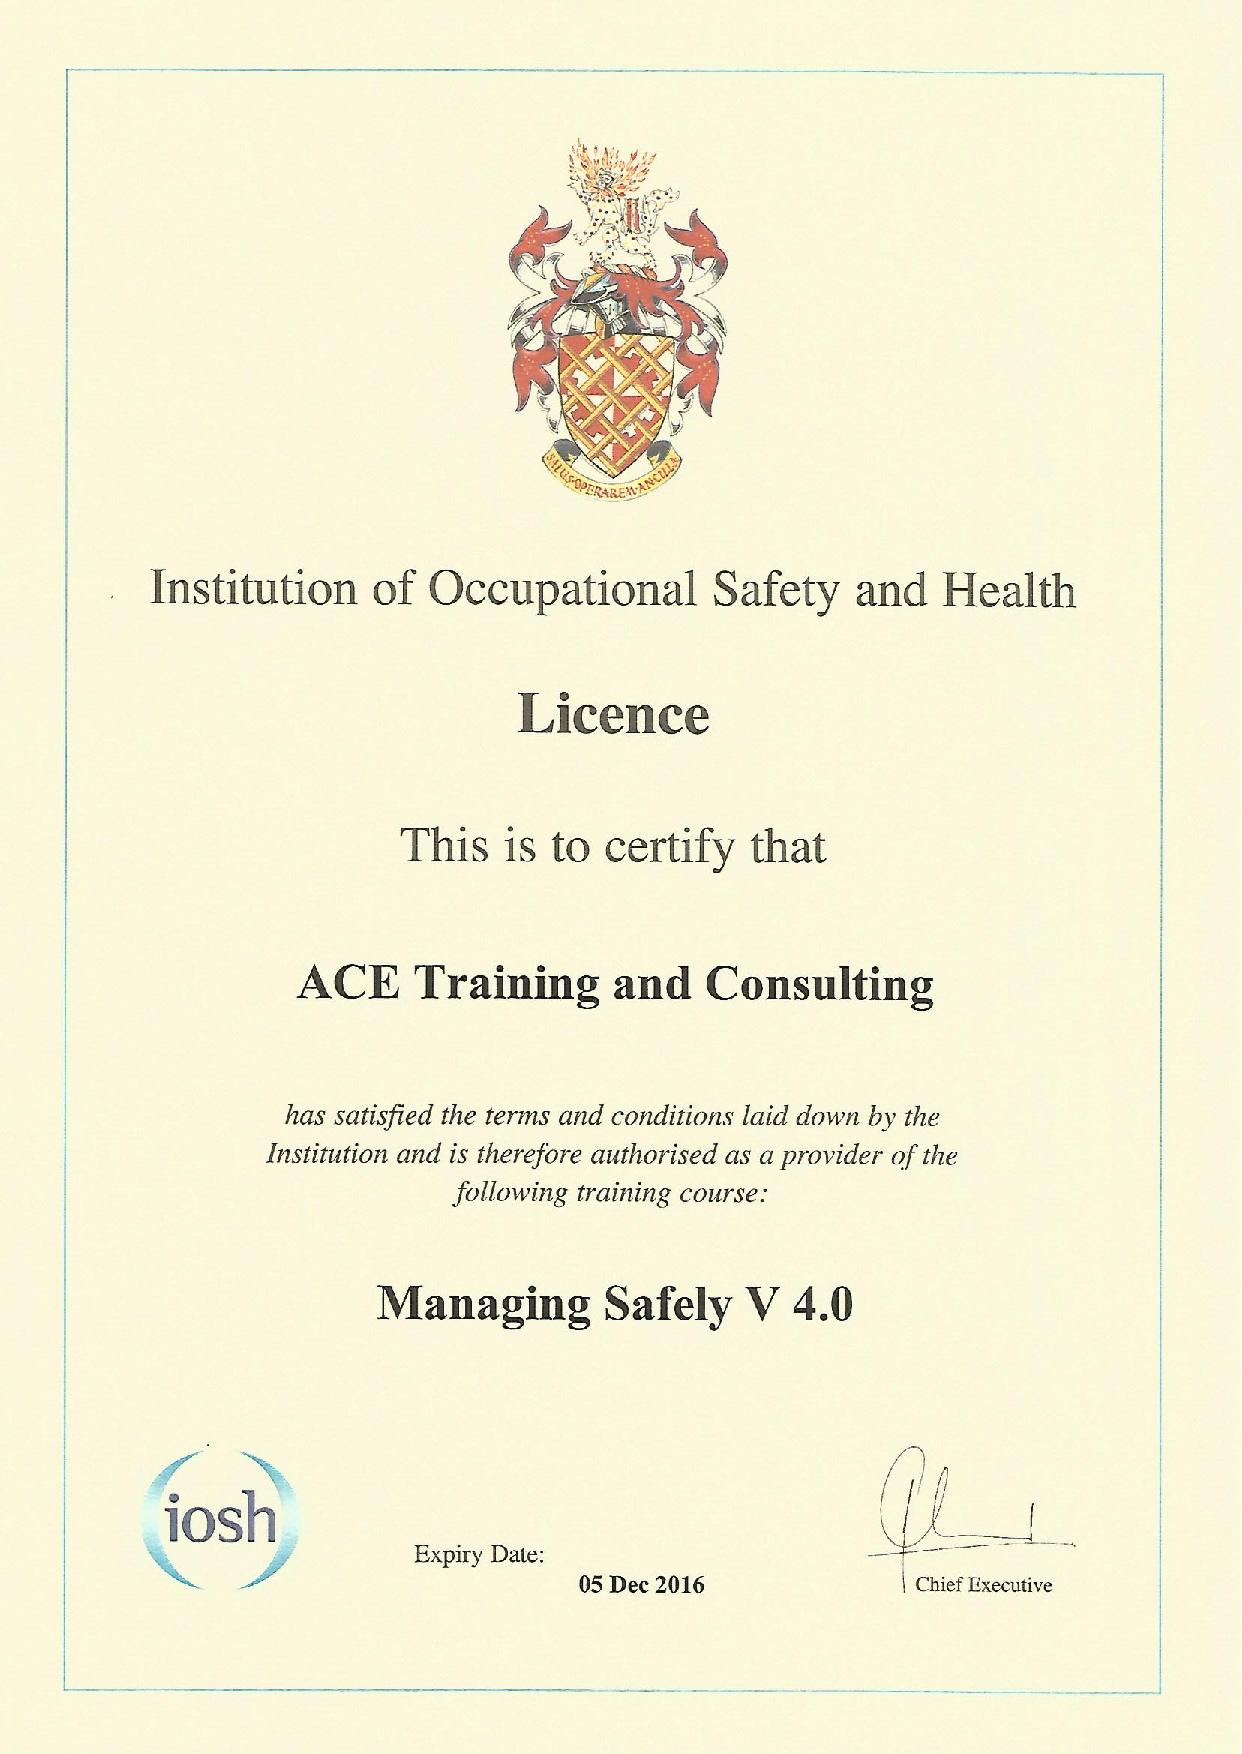 INSTITUTION OF OCCUPATIONAL SAFETY & HEALTH - ACE Training